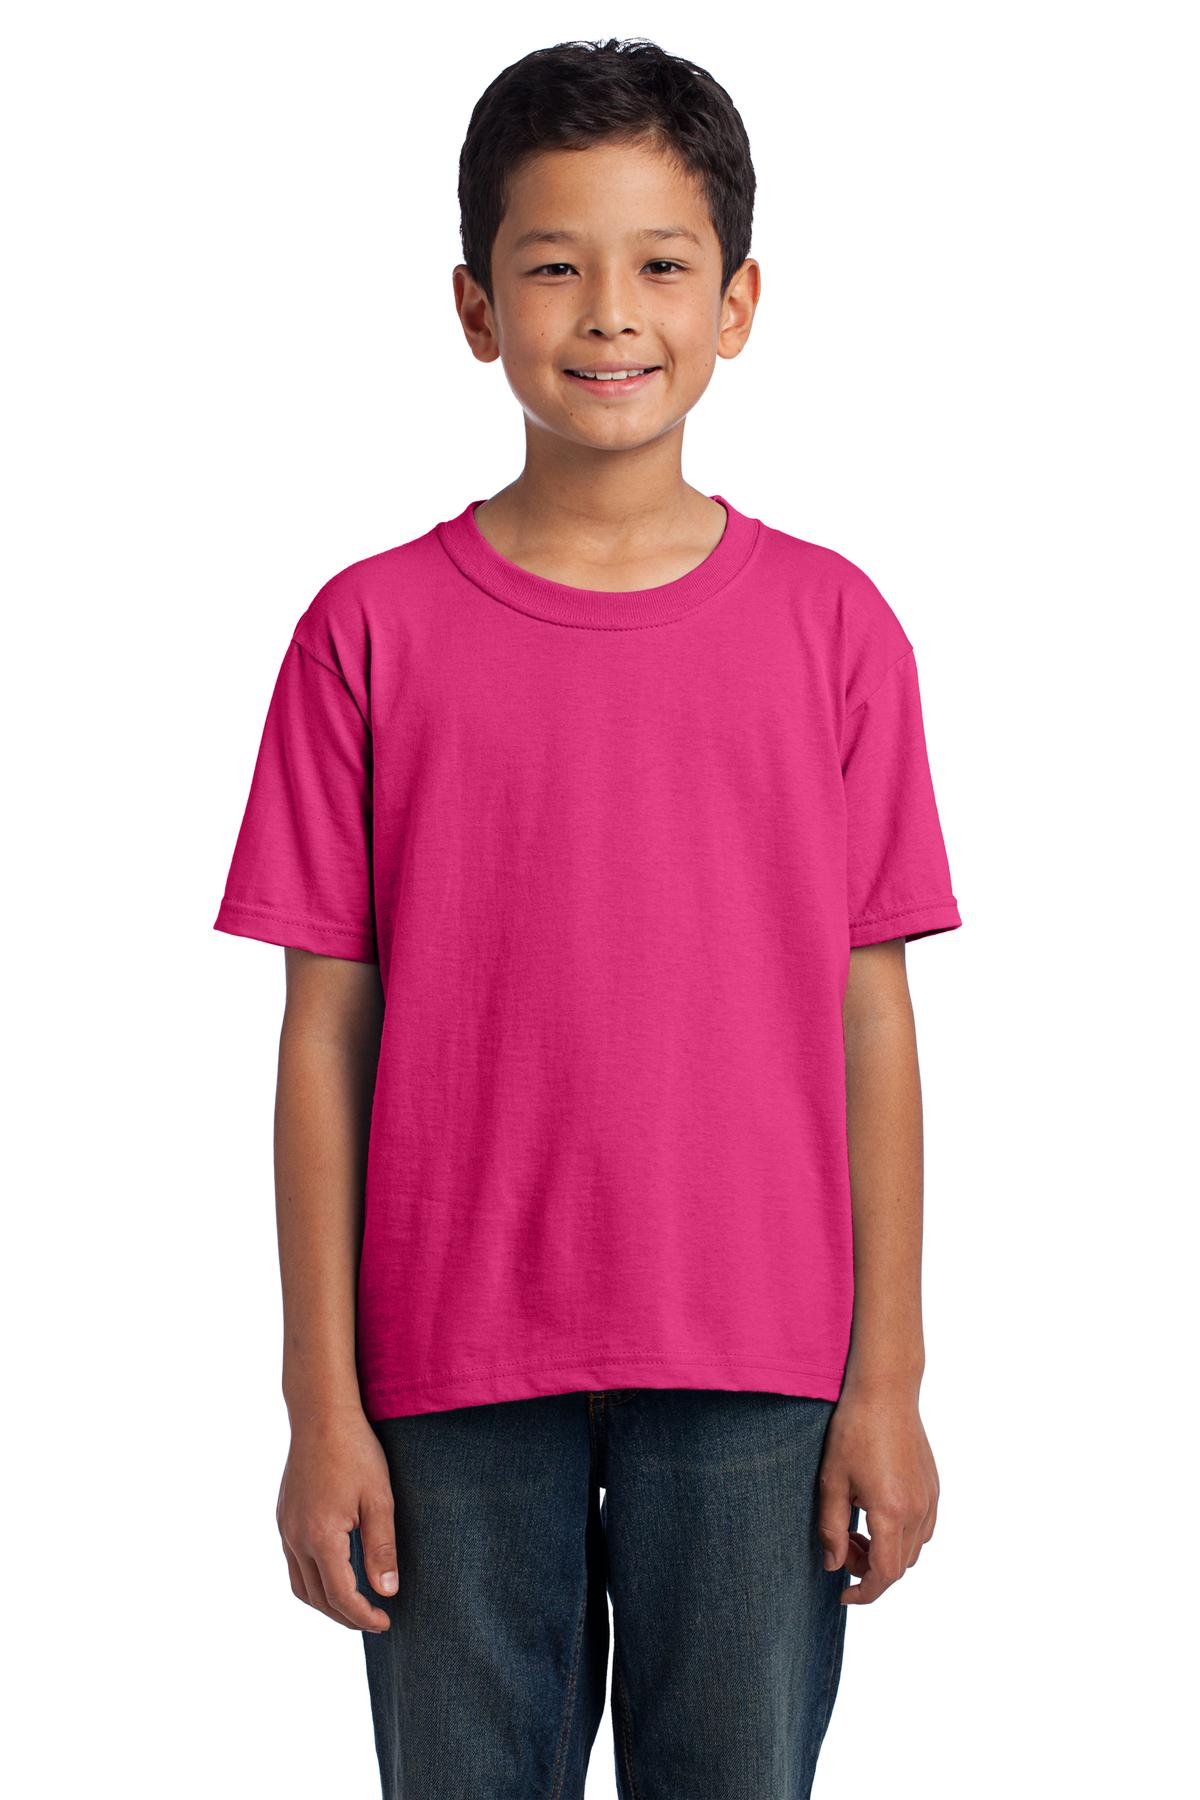 Fruit of the Loom ®  Youth HD Cotton ™  100% Cotton T-Shirt. 3930B - Cyber Pink